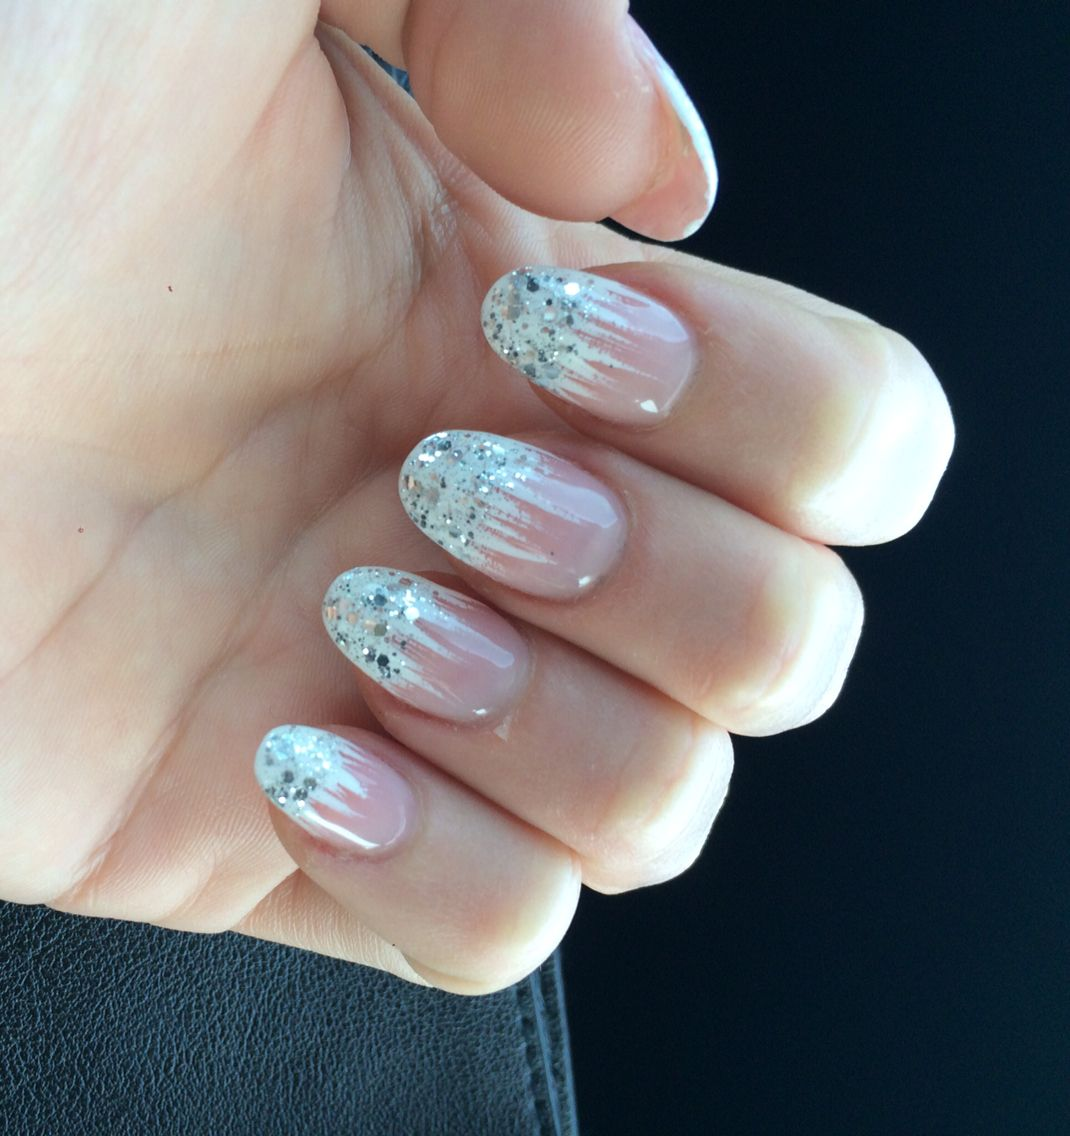 French acrylic nail design, french manicure, acrylic nail design ...